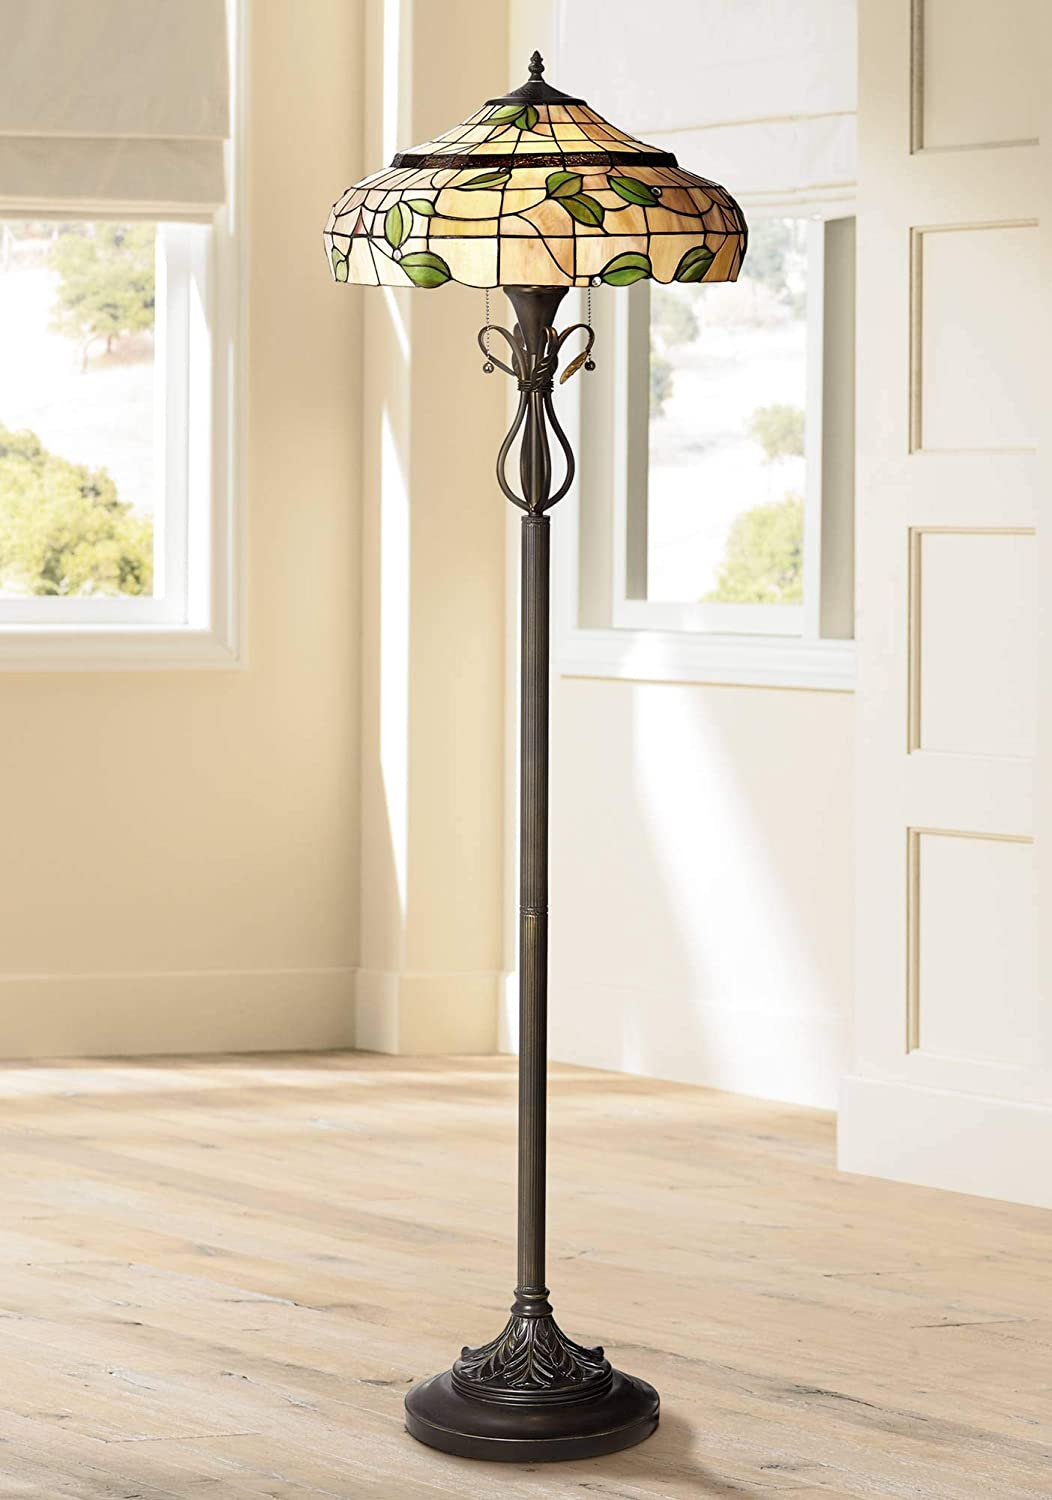 Vivian Cottage Floor Lamp Bronze Green Leaf Pattern Stained Glass Shade for Living Room Reading Bedroom Office – Robert Louis Tiffany